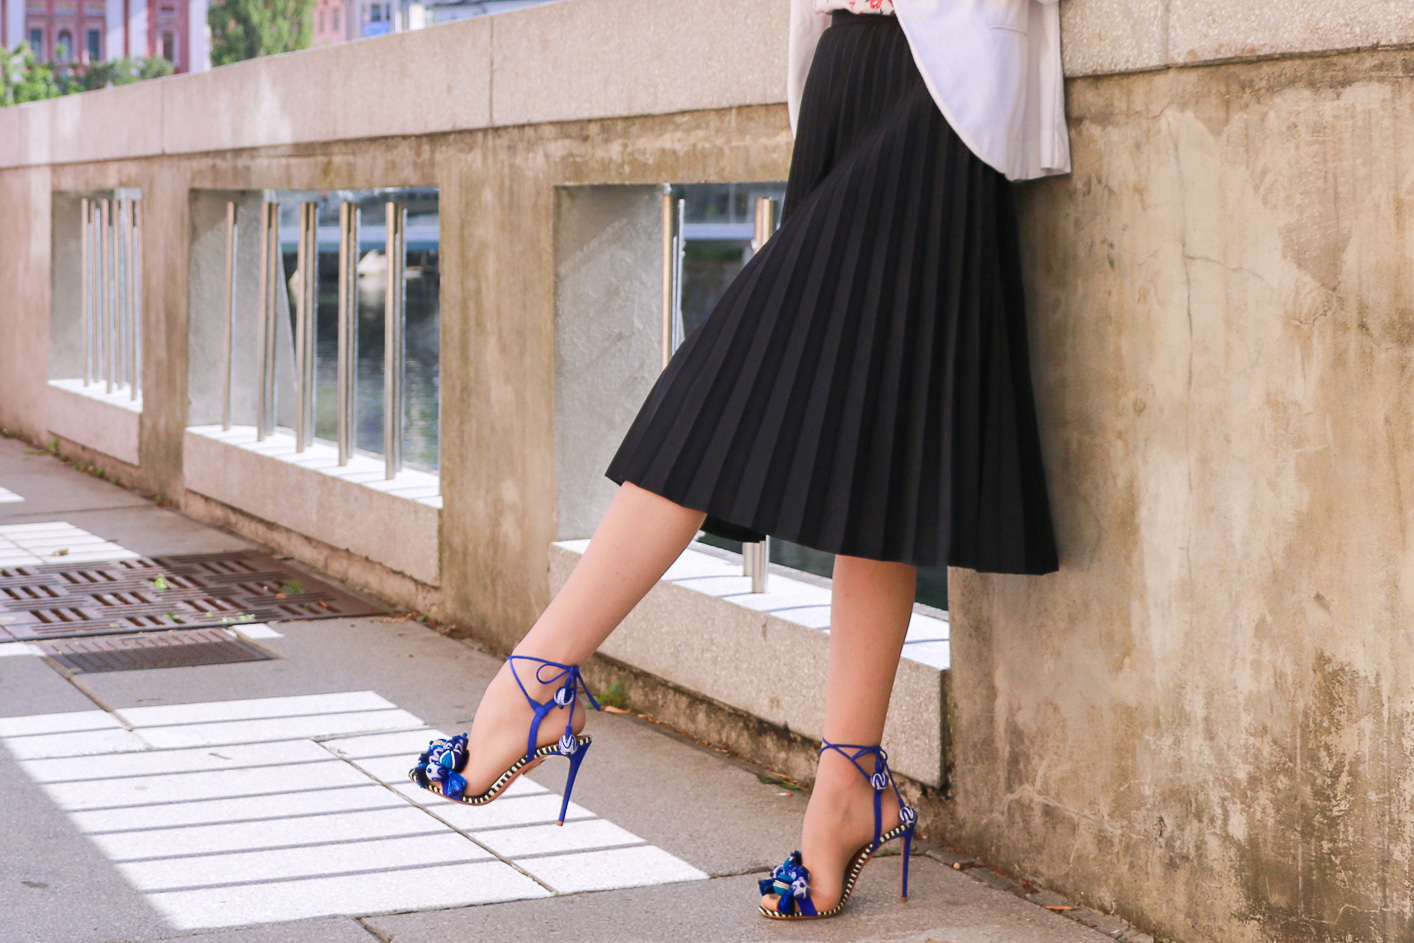 Fashion blogger Veronika Lipar of Brunette From Wall Street in Ljubljana dressed in black vintage pleated midi skirt, blue Tropicana tasseled beaded sandals from Aquazzura, floral top, and white blazer for a chic street style look